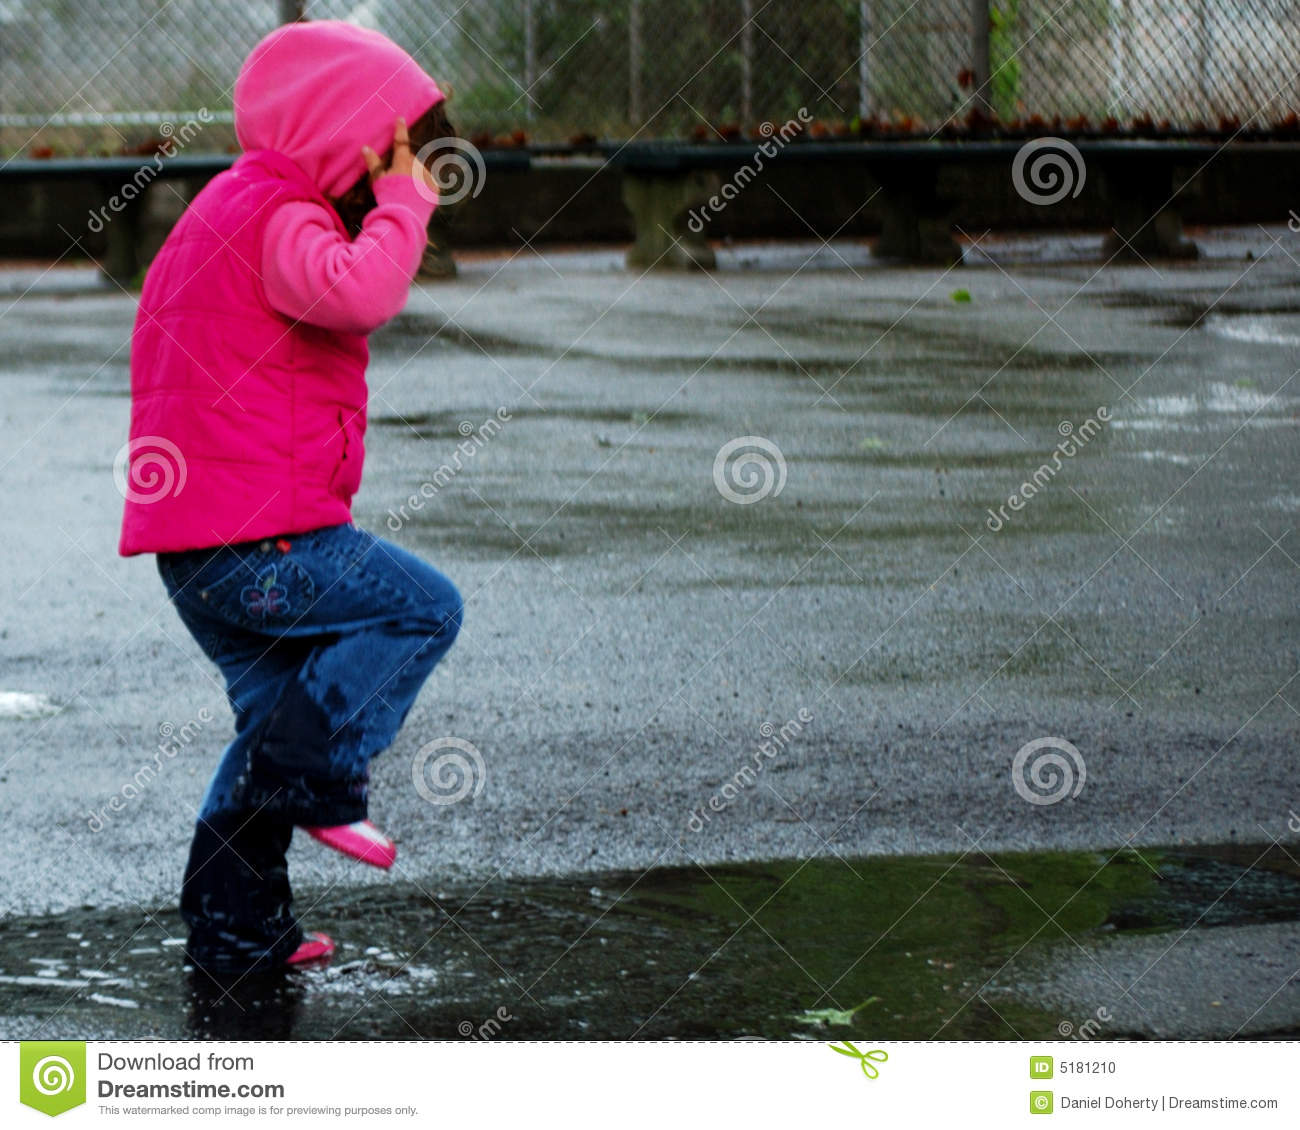 Little Girl Jumping in Puddle 3